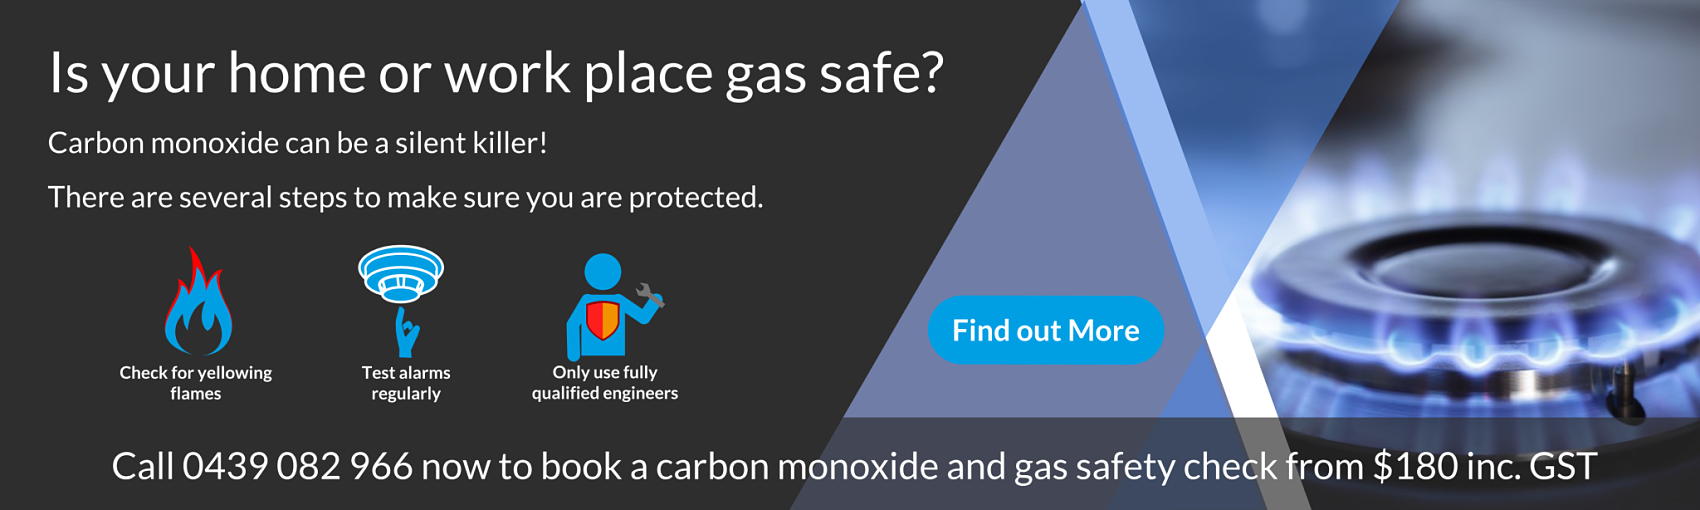 Carbon monoxide can be a silent killer